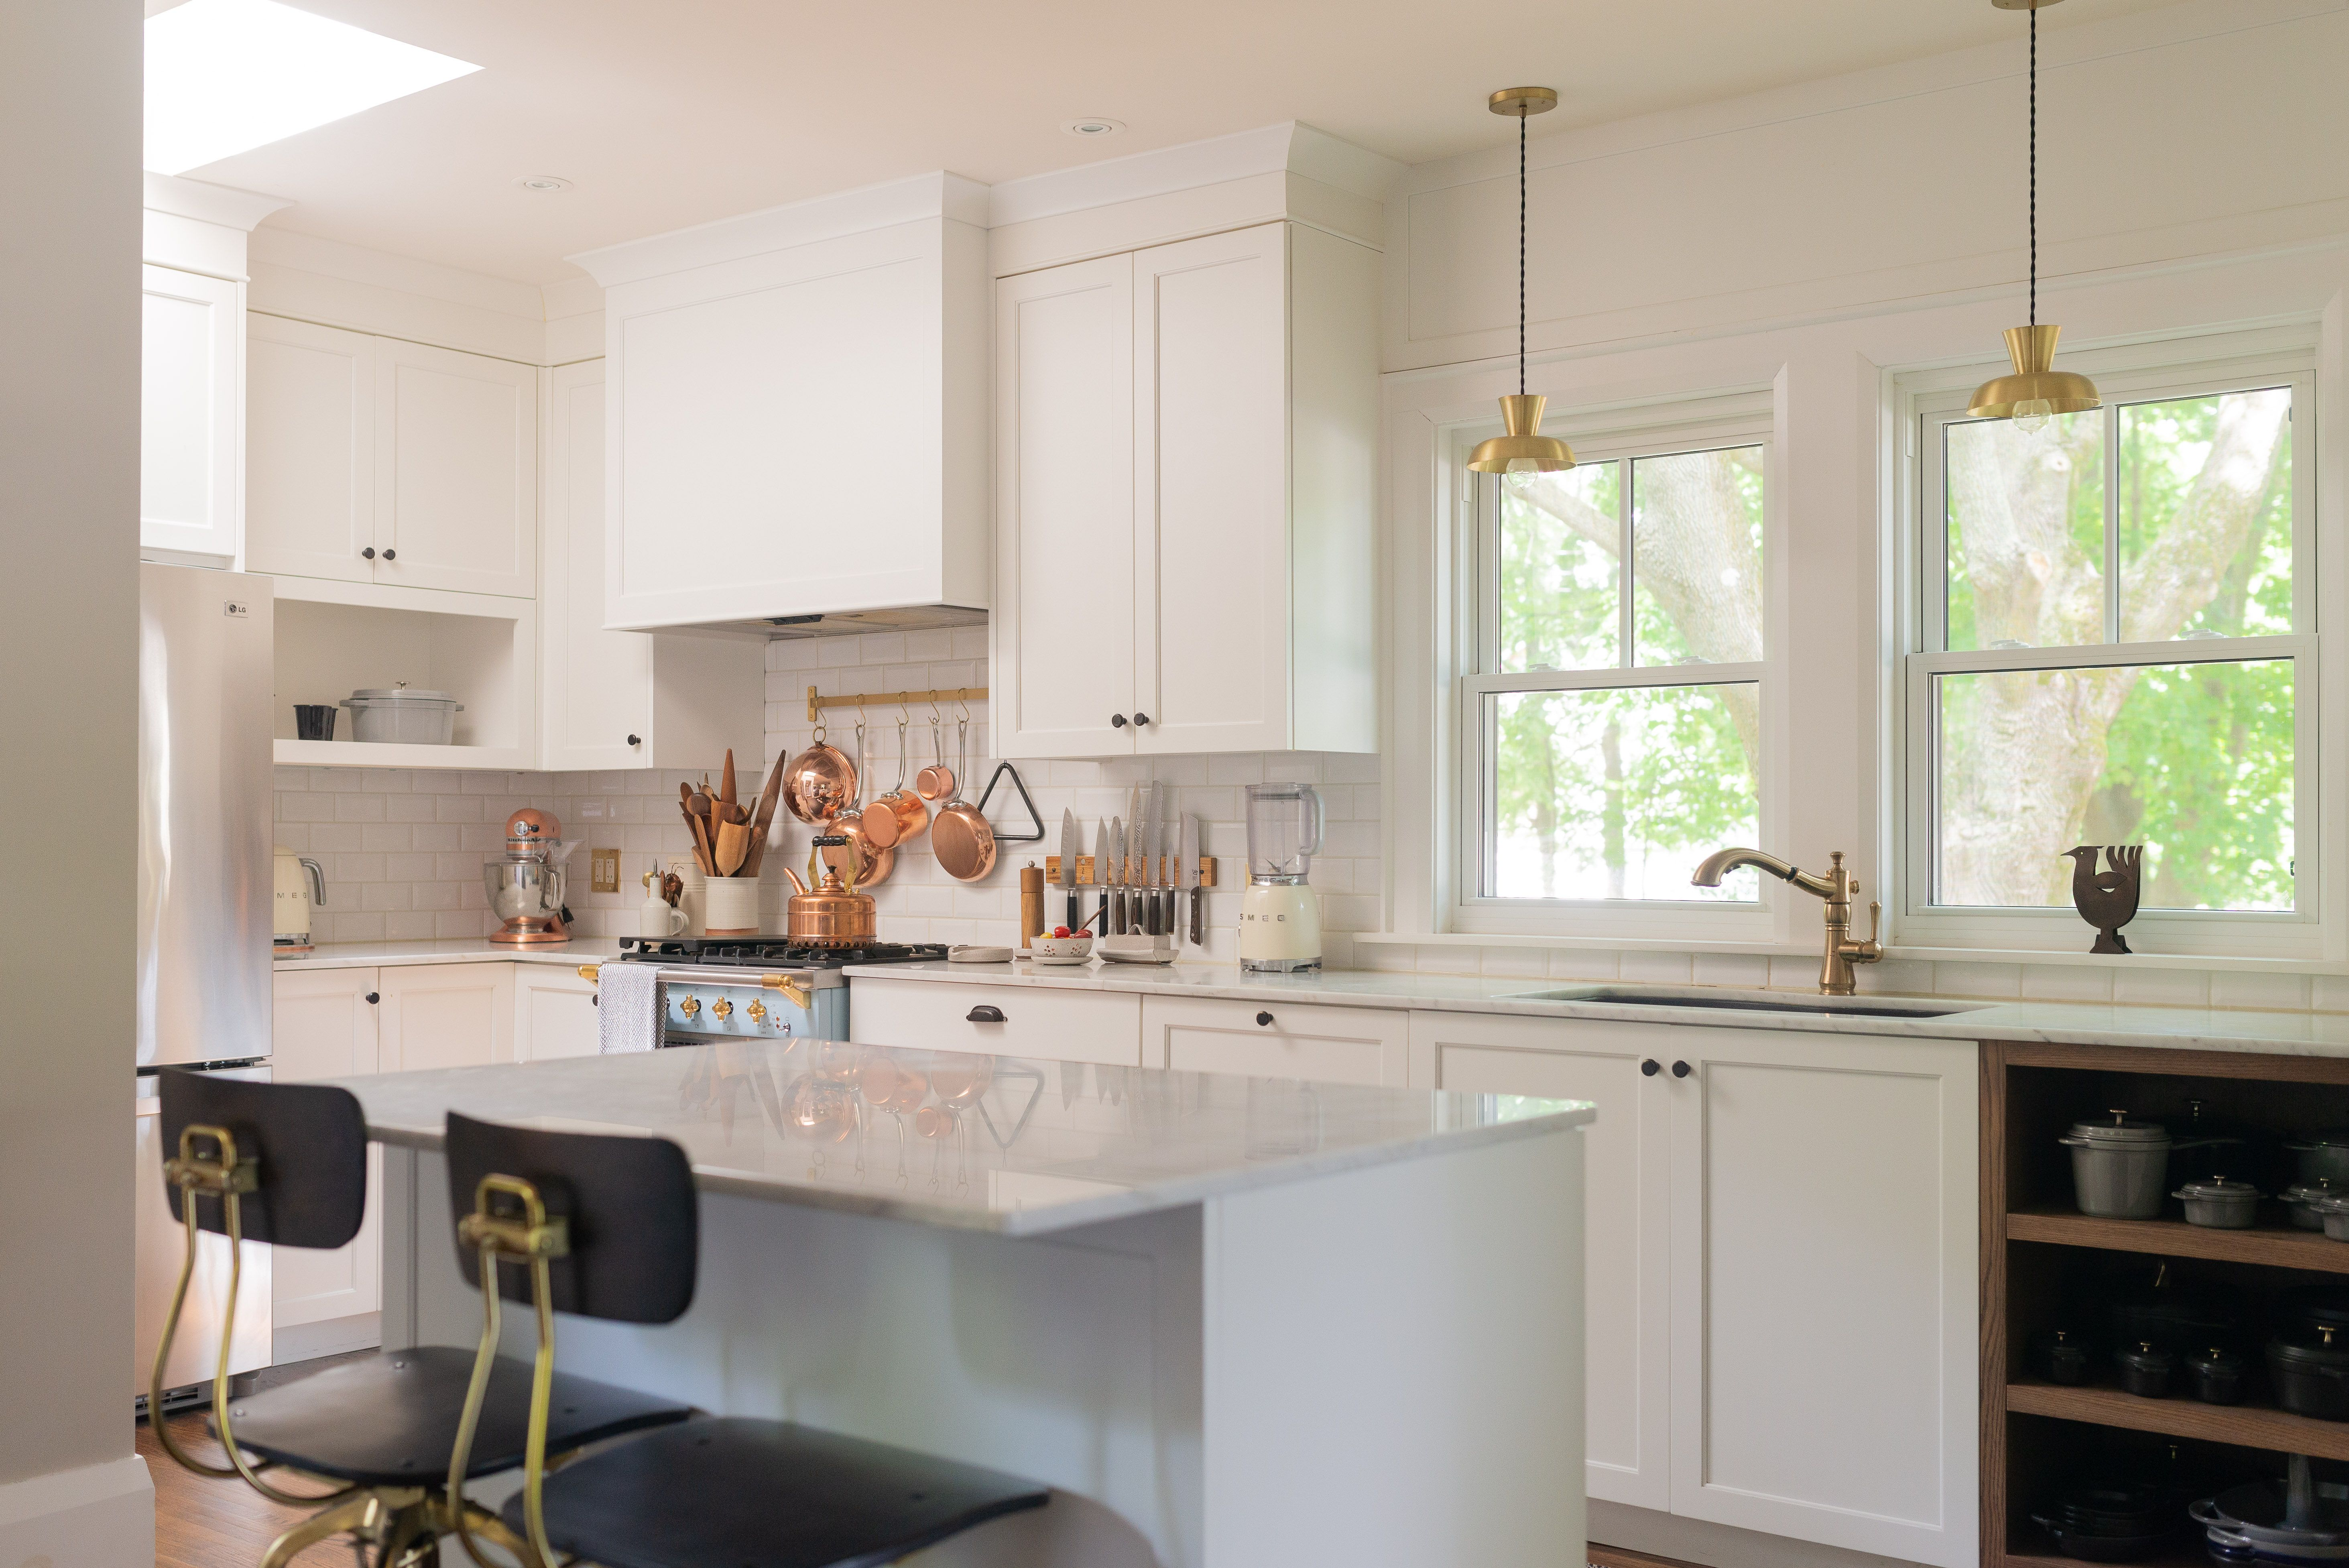 8 Ways To Deal With Those Awkward Kitchen Cabinet Soffits Decoration Outdoor Cuisine Decoration